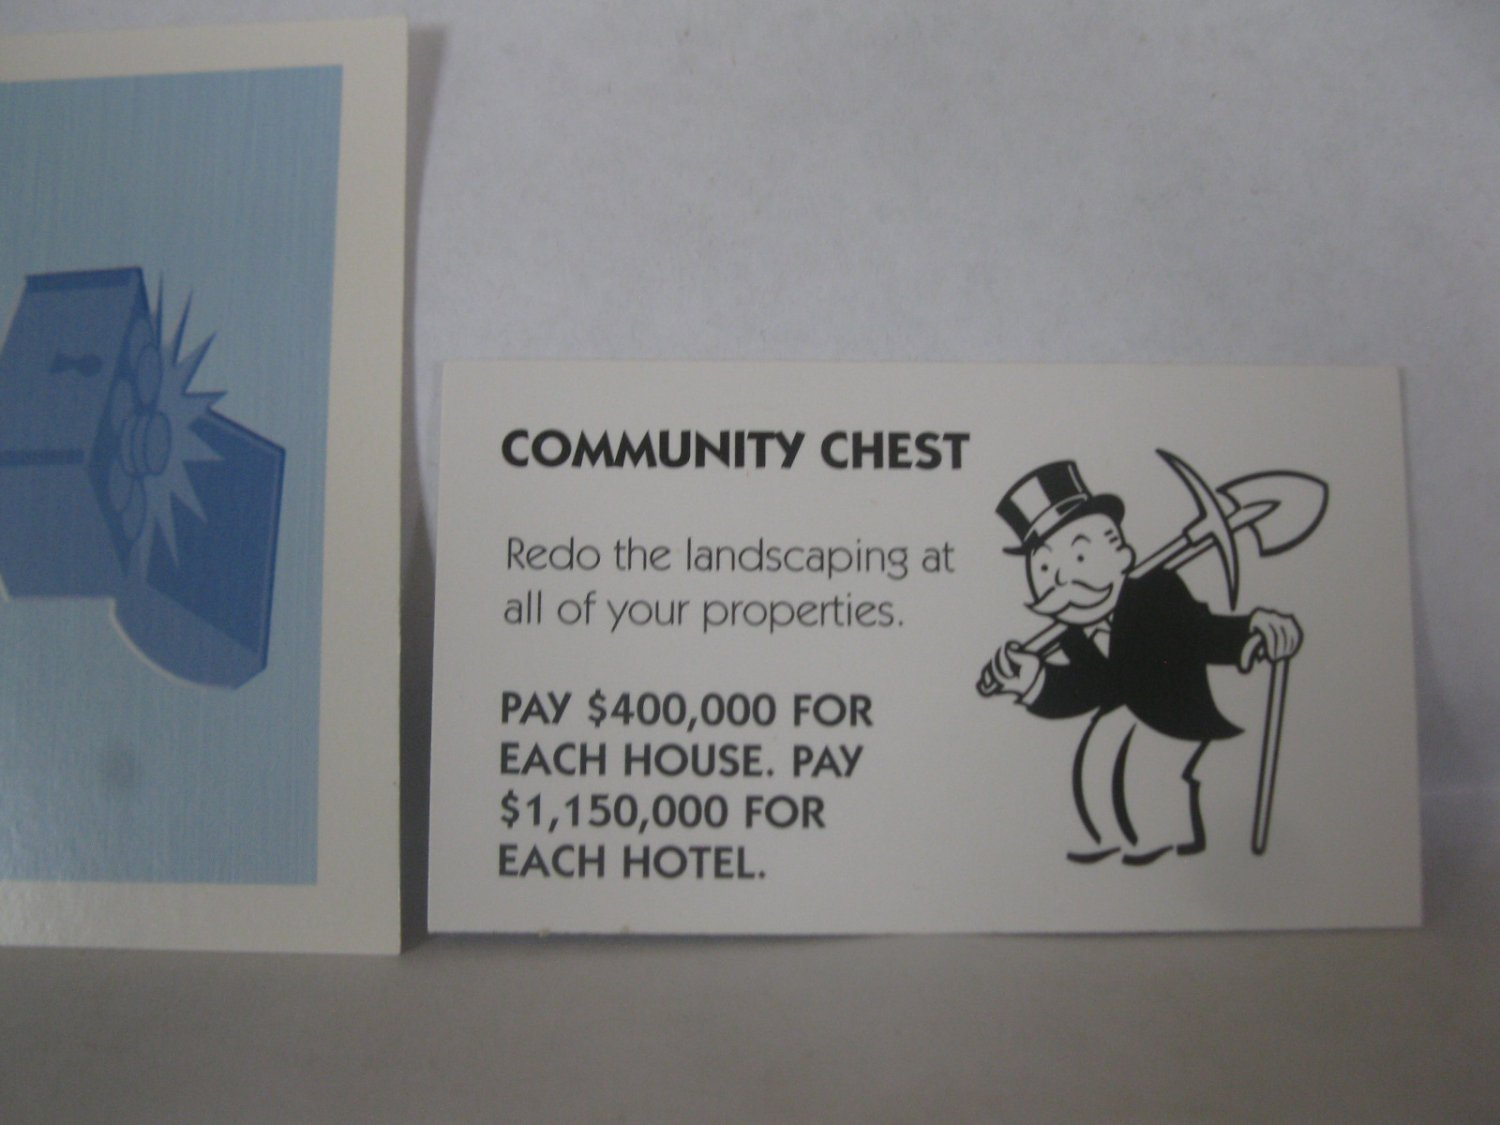 2006 Monopoly - Here & Now Board Game Piece: Community Chest Card - Redo Landscaping